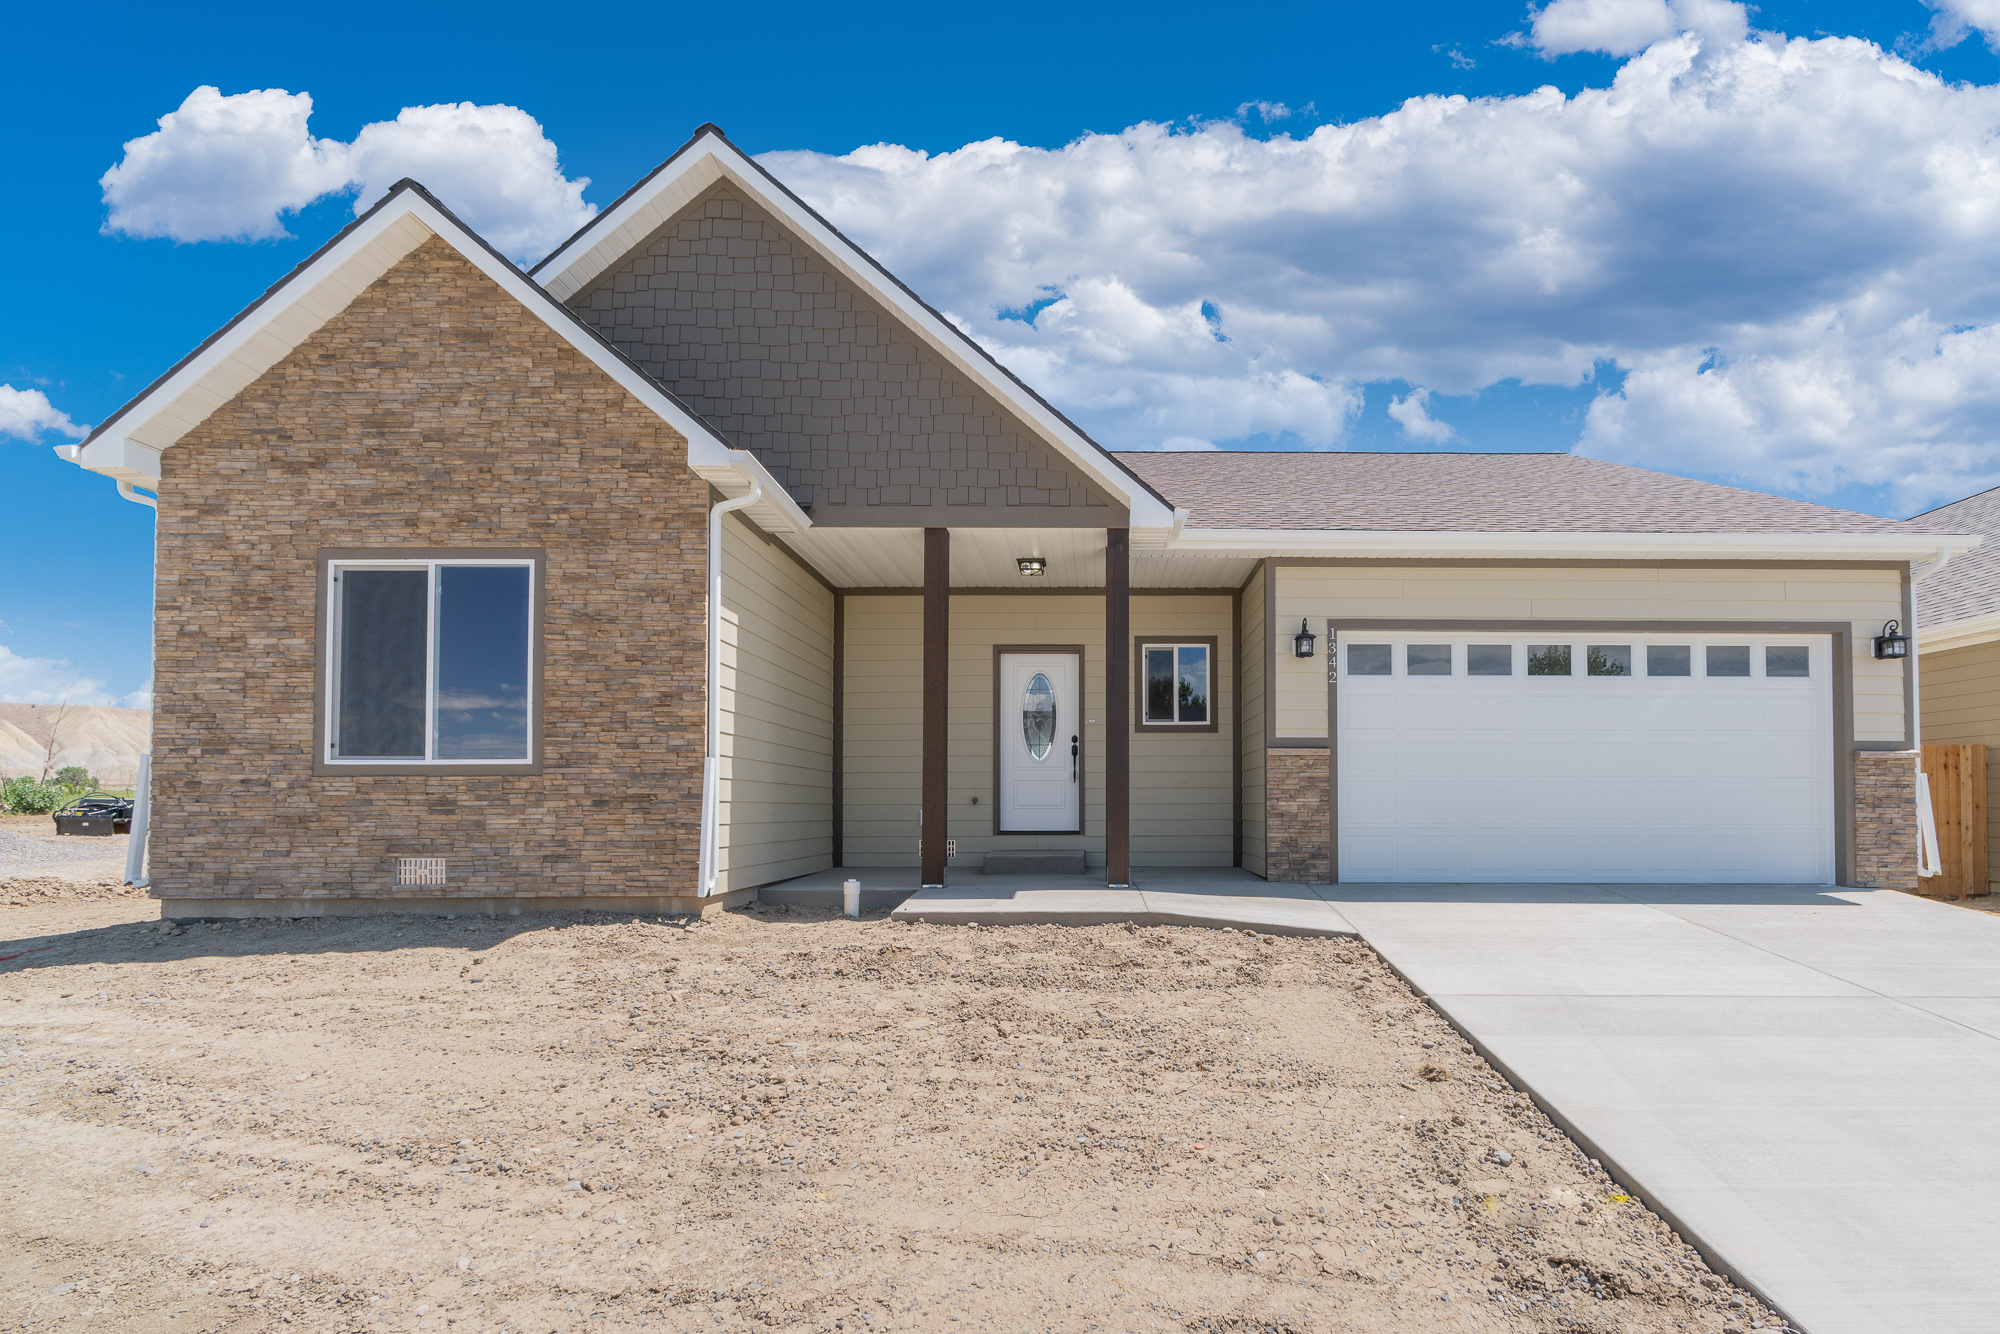 Grand Teton Home Model in Bear Creek Subdivision